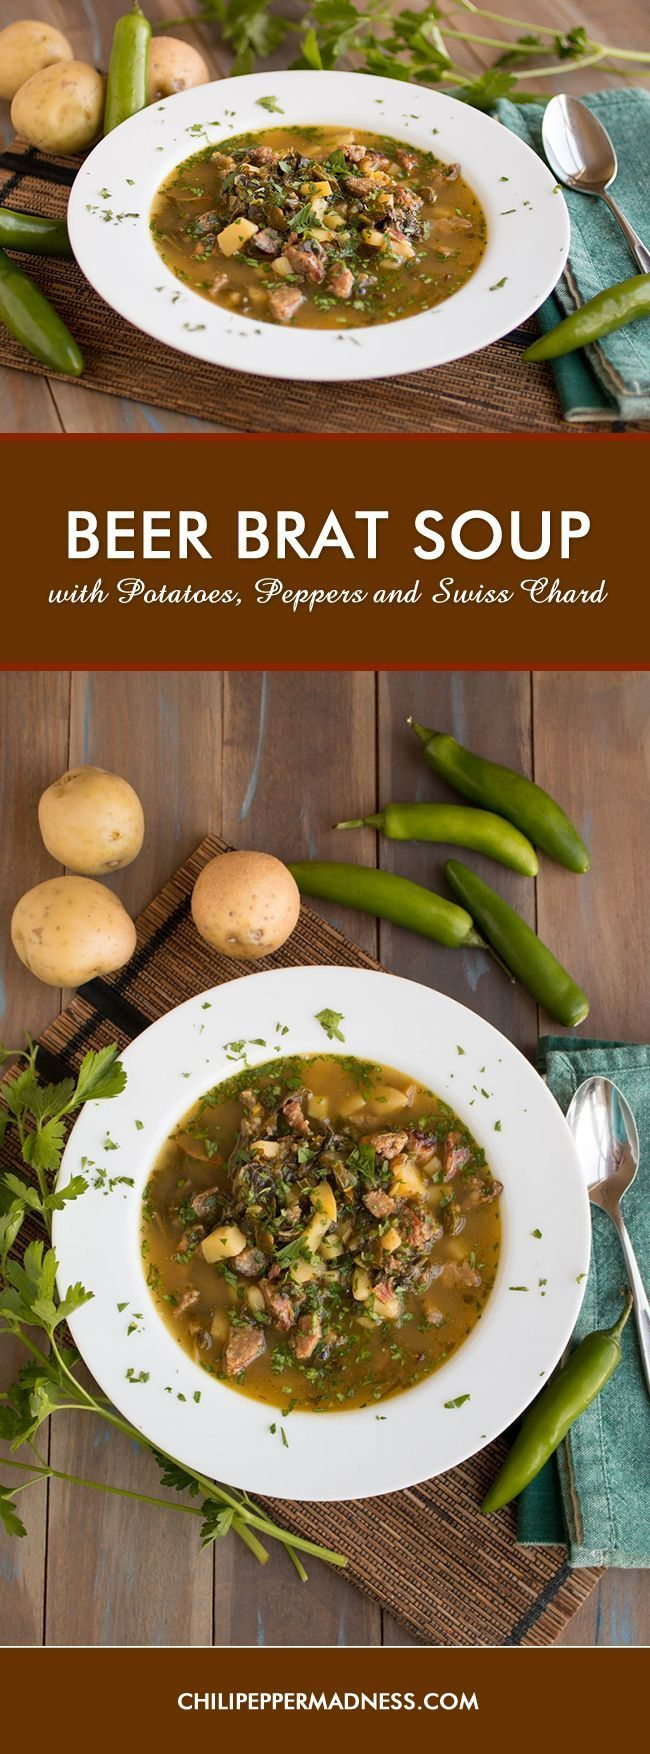 Beer Brat Soup with Potatoes, Peppers and Swiss Chard Recipe - Made ...